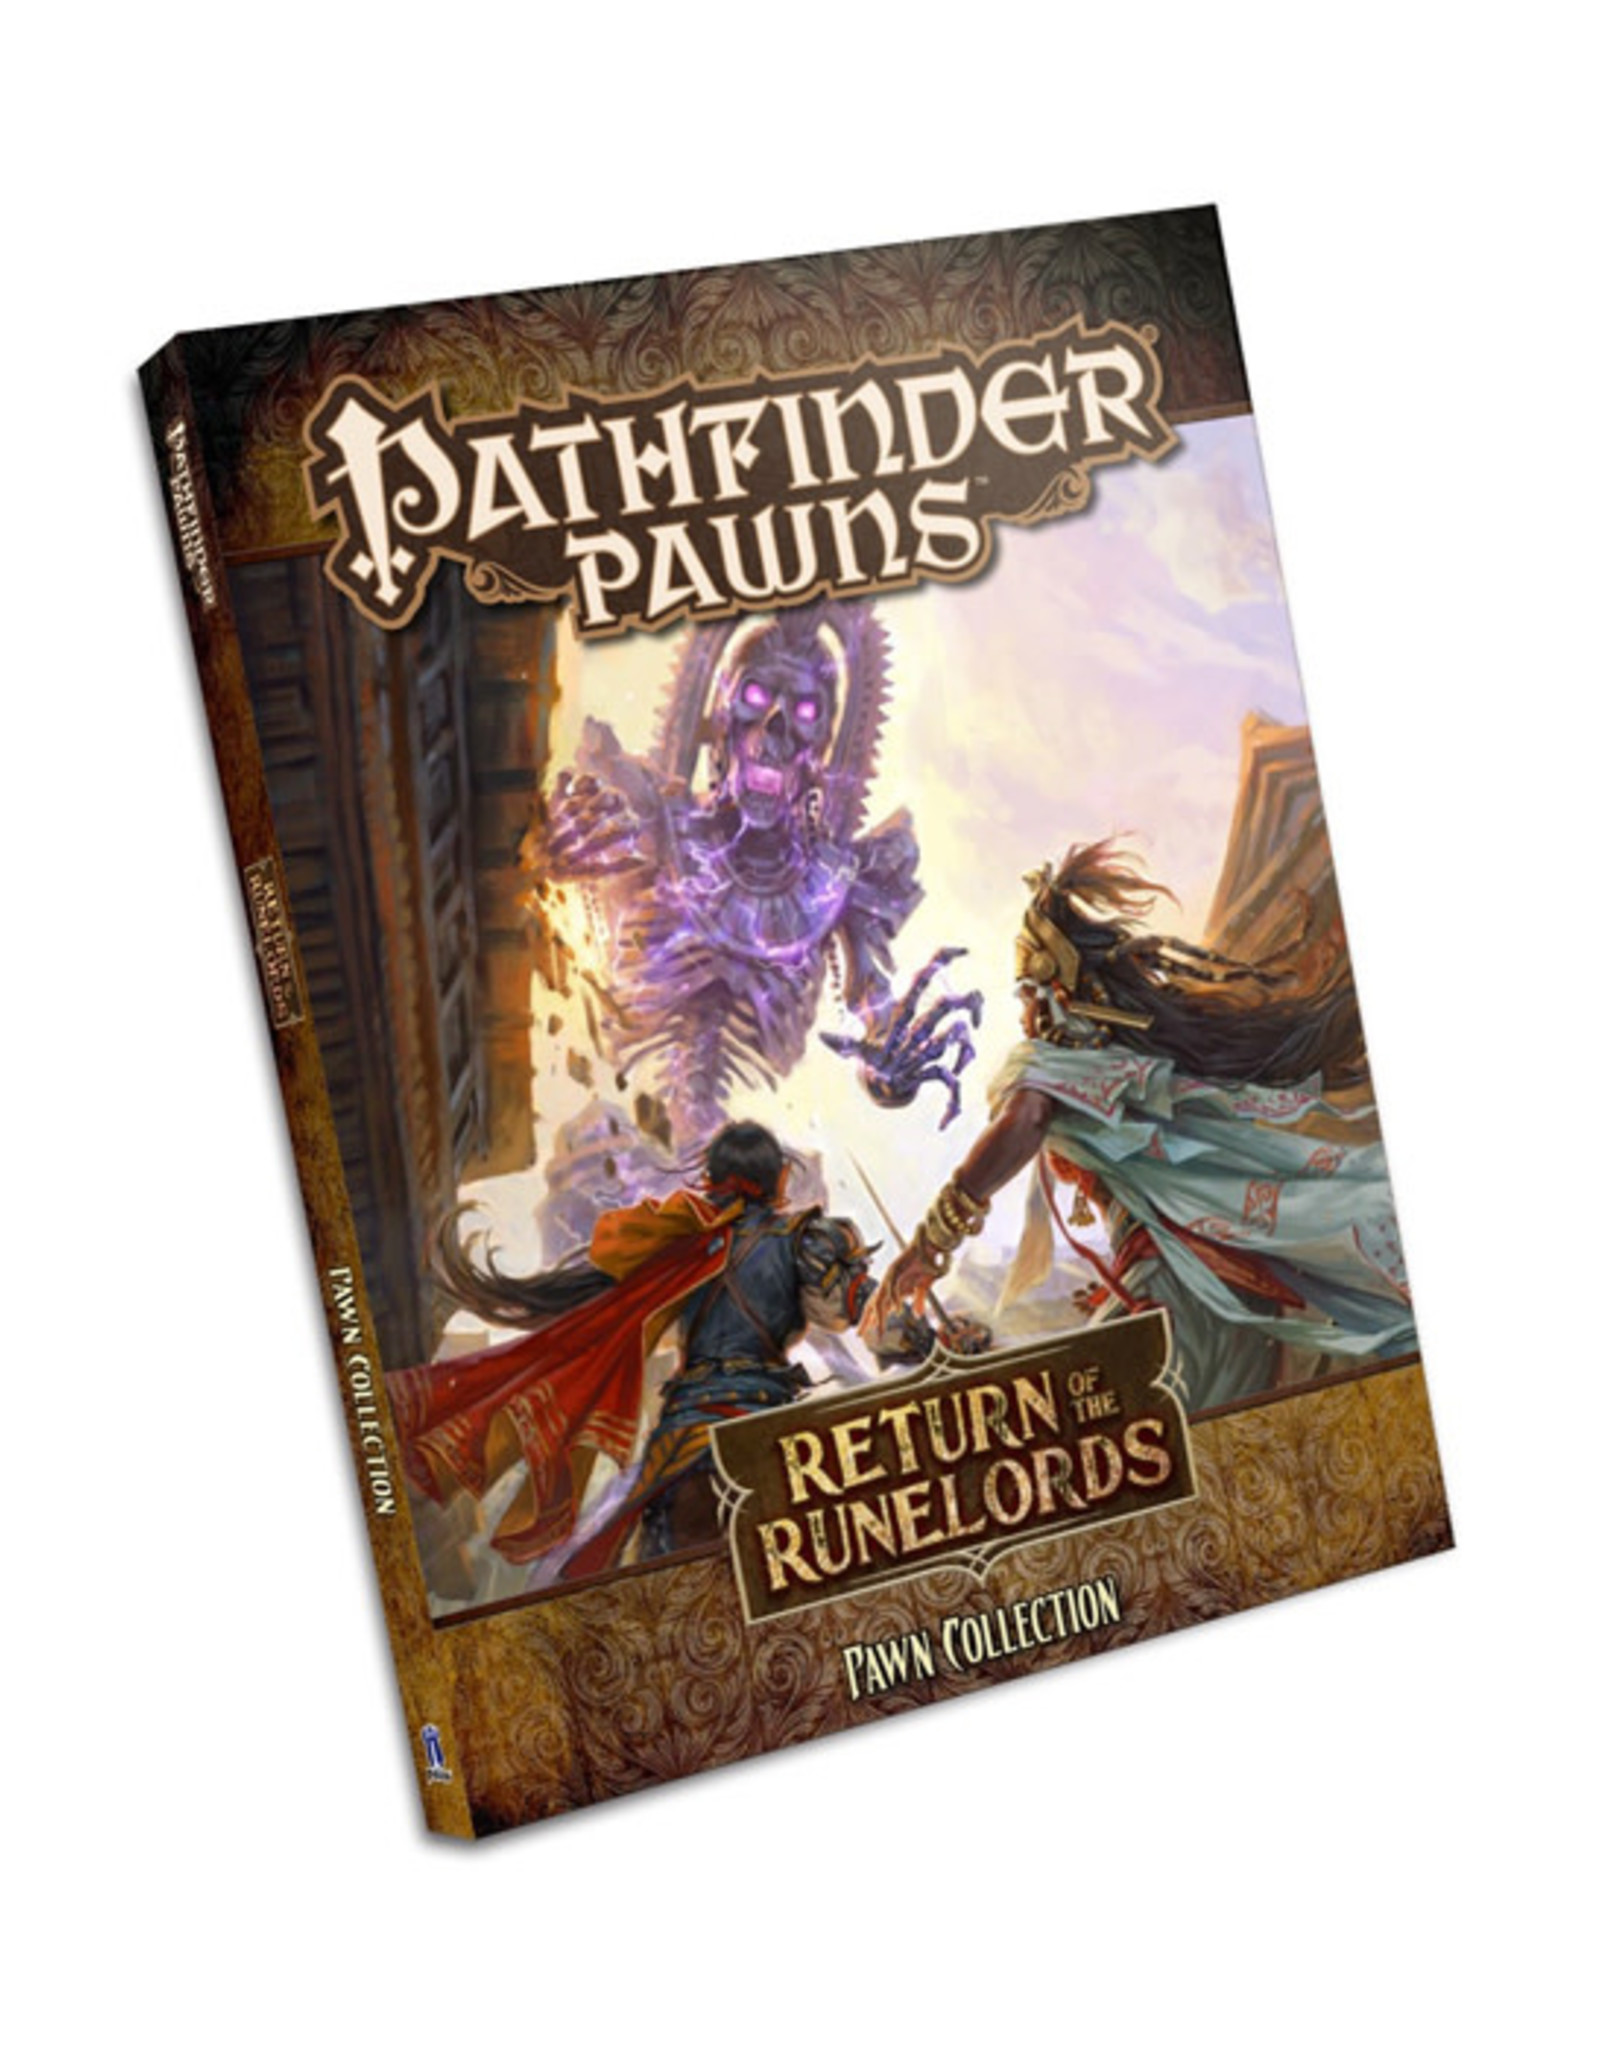 Pathfinder Pathfinder: Pawns - Return of the Runelords - Pawn Collection